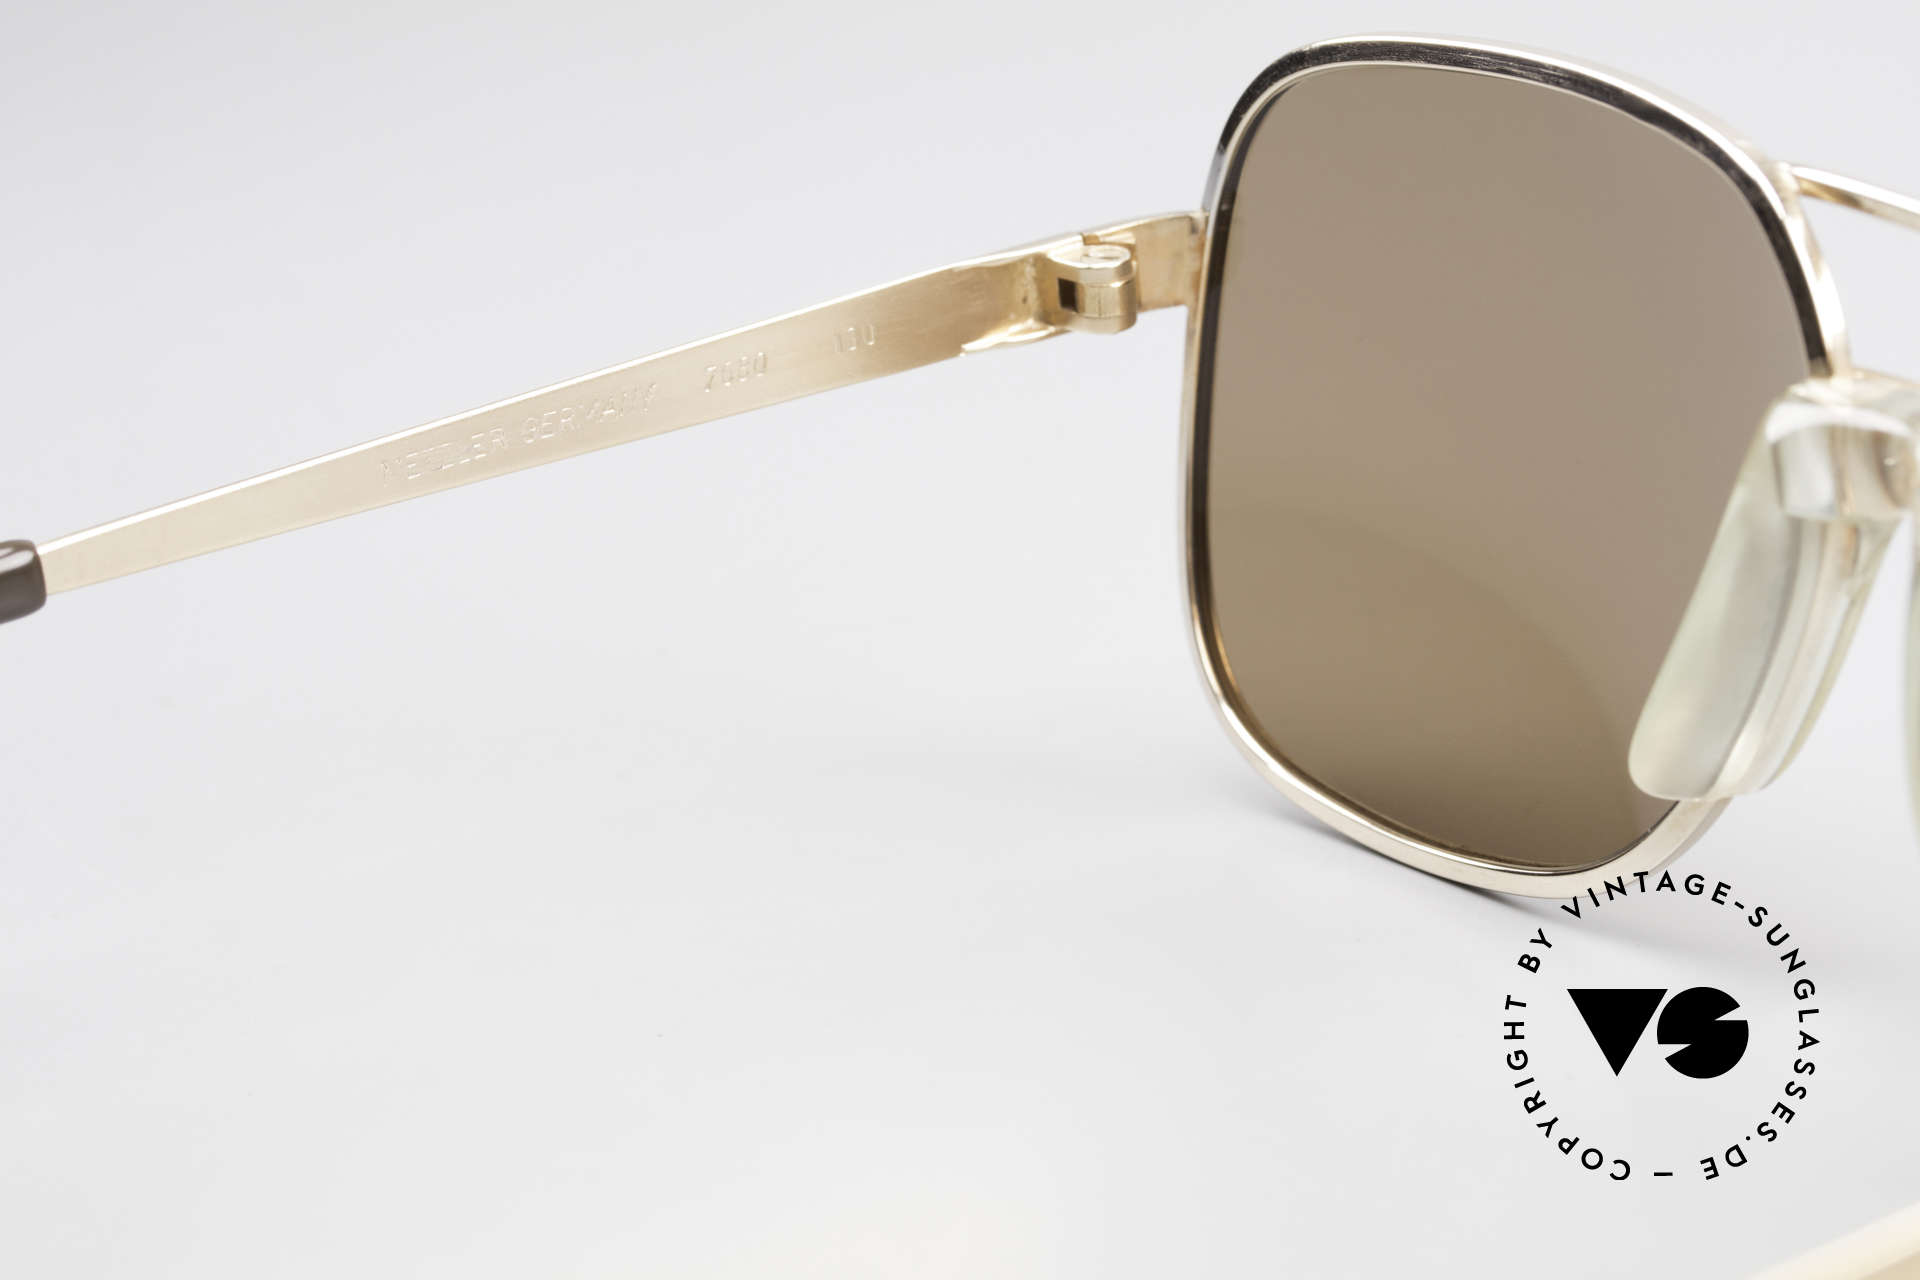 Metzler 7680 Small 80's Frame Gold Plated, sun lenses could be replaced with optical lenses, Made for Men